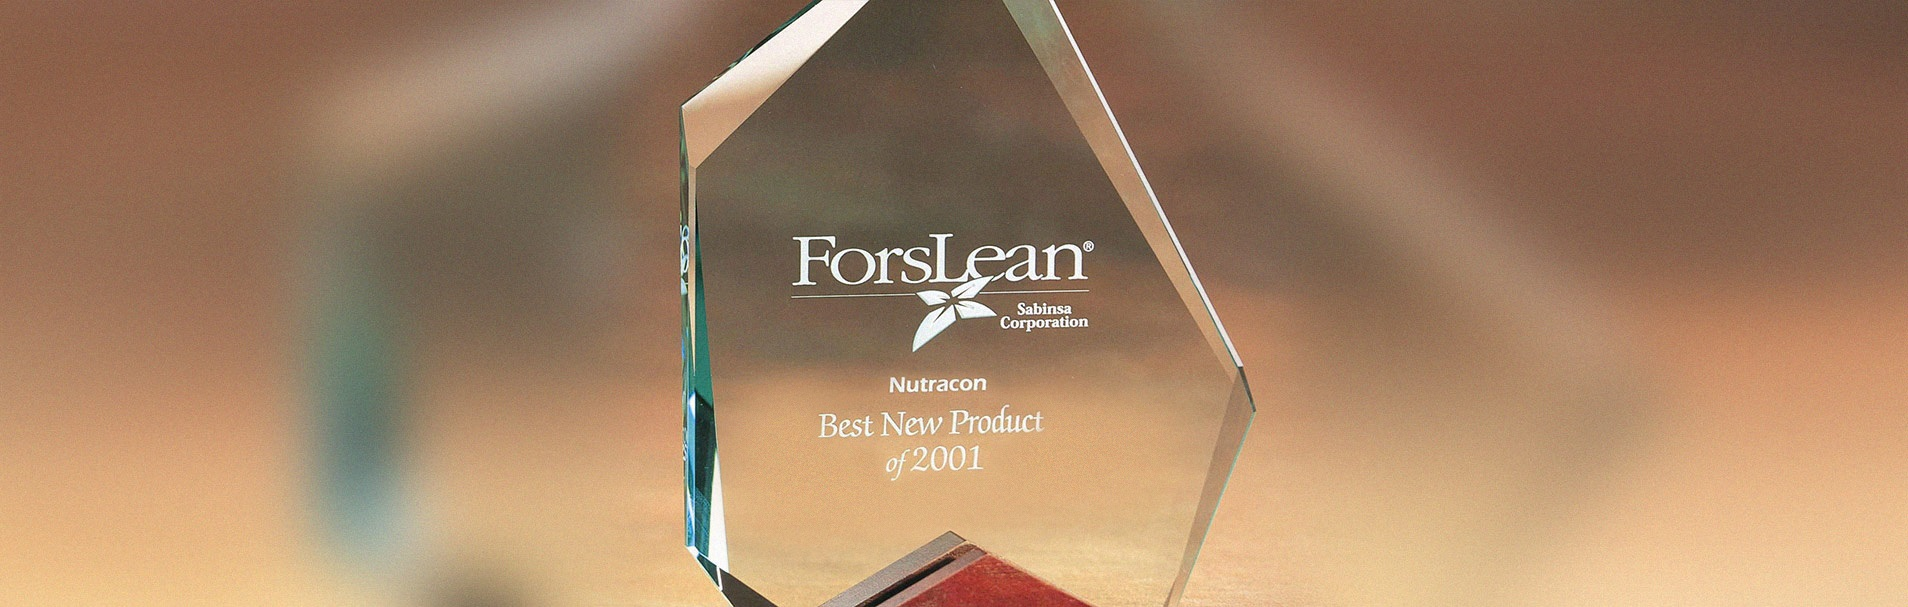 Nutracon Best New Product Award 2001